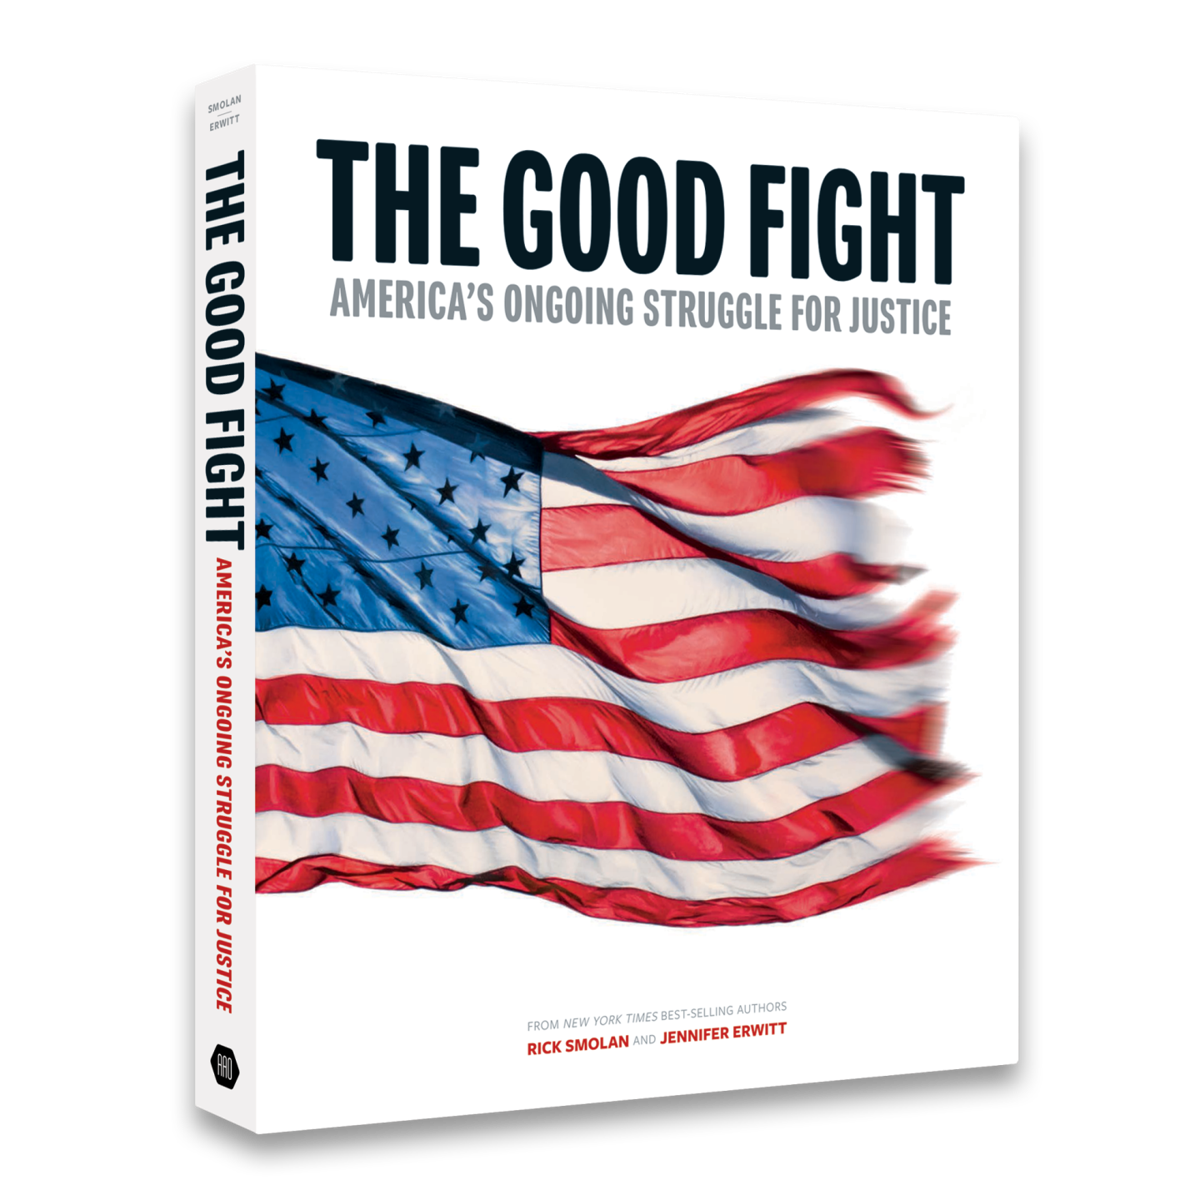 The good fight book sleeve